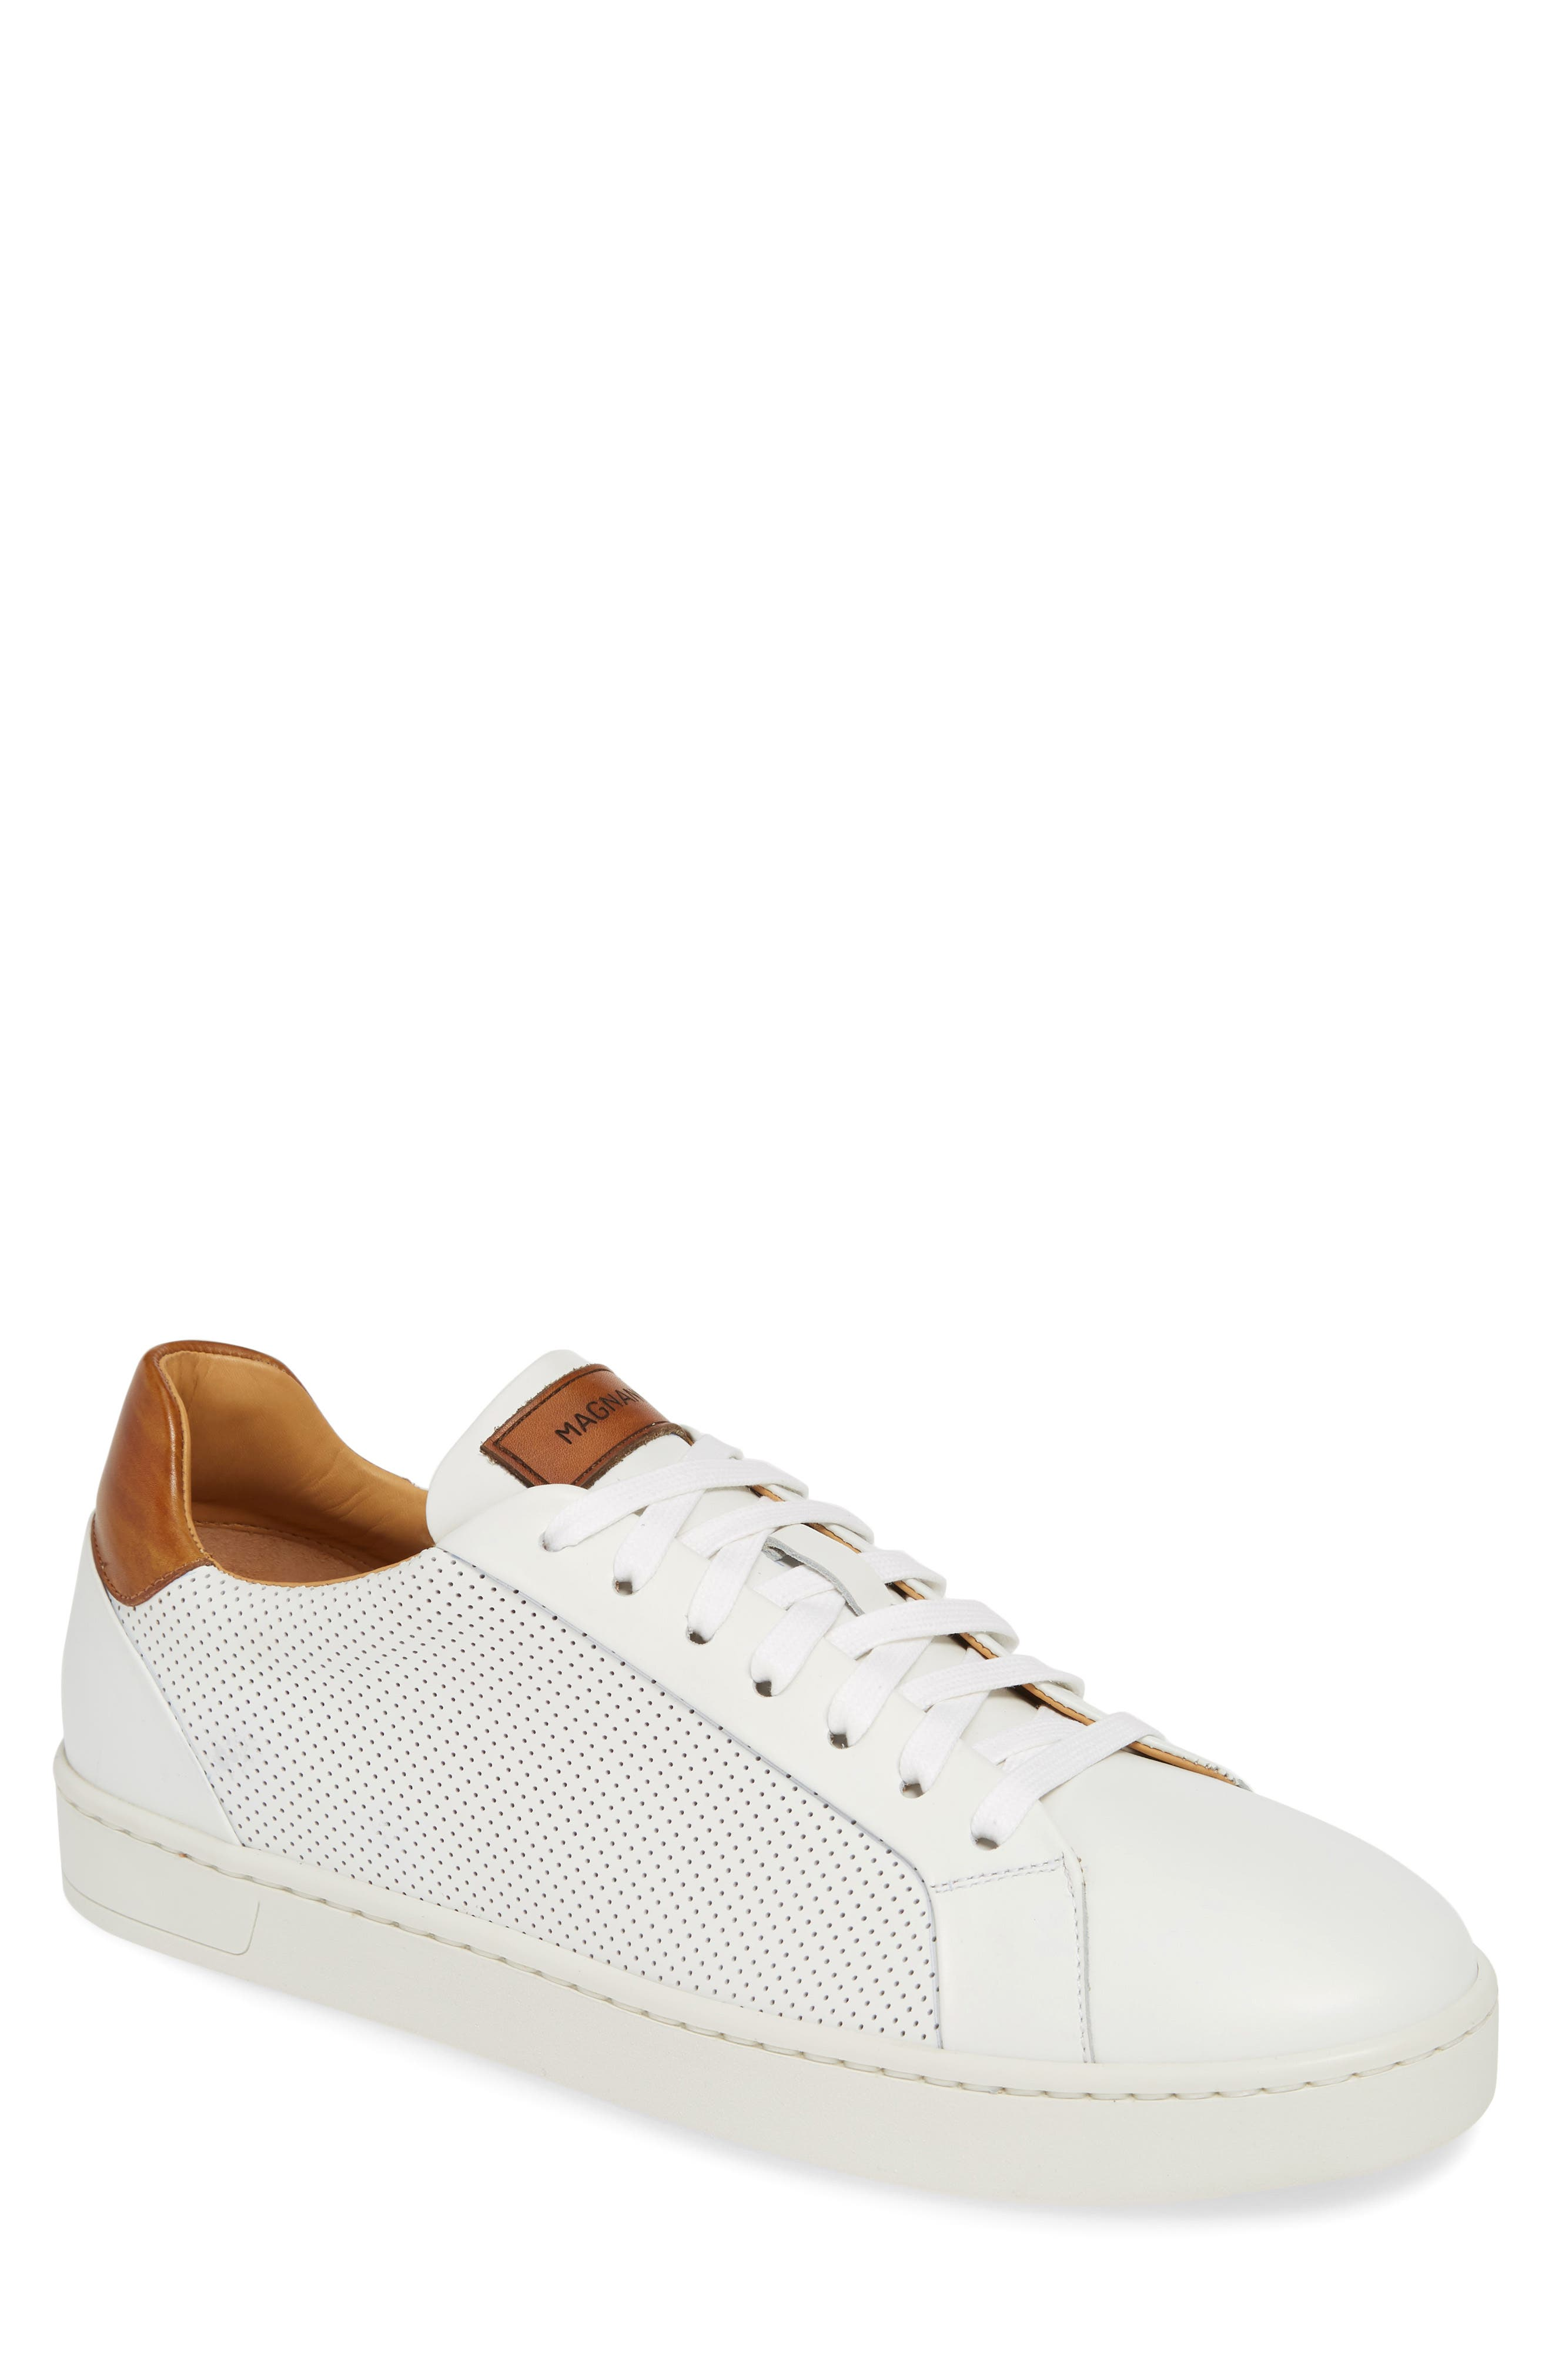 Magnanni All-White Sneakers | Nordstrom